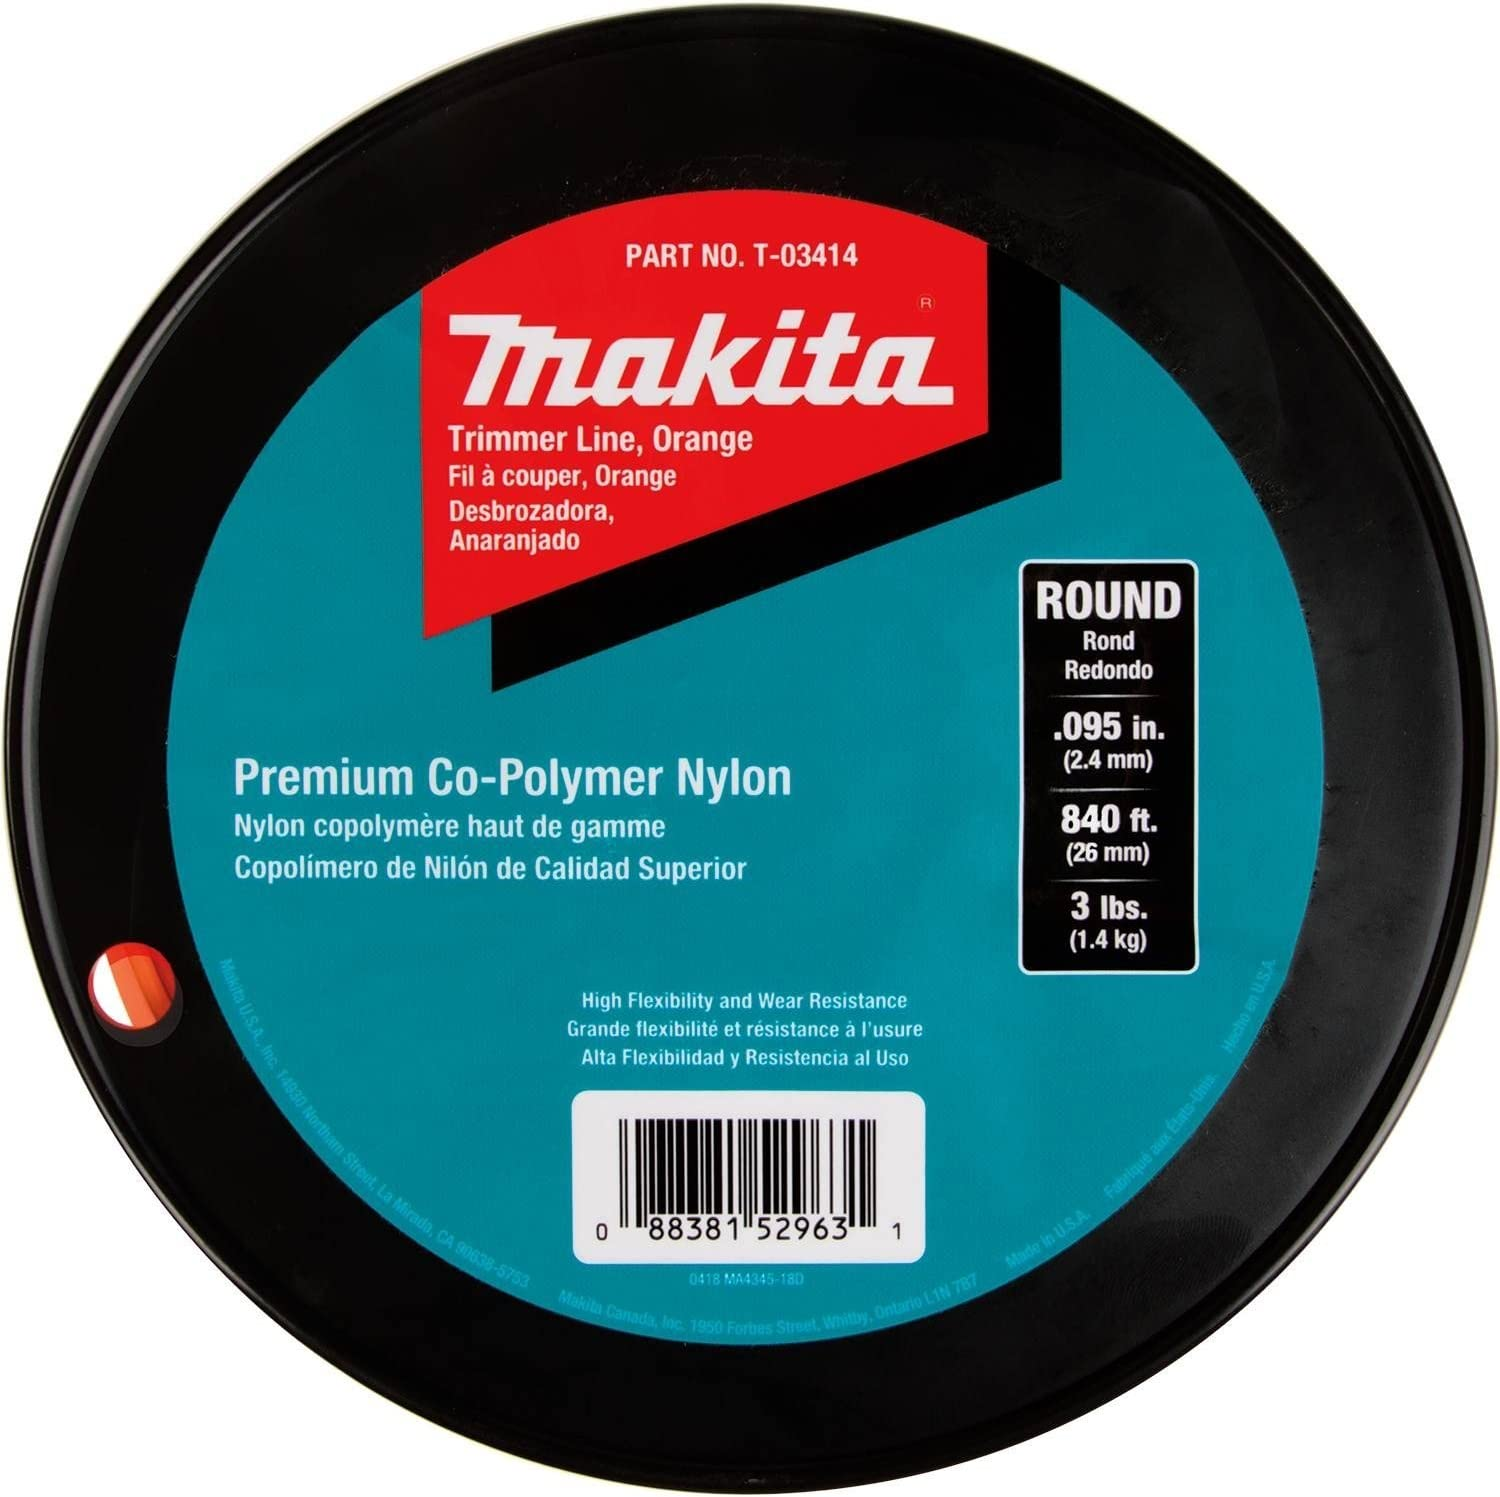 Amazon.com : Makita, Orange, T-03414 Round Trimmer Line ...